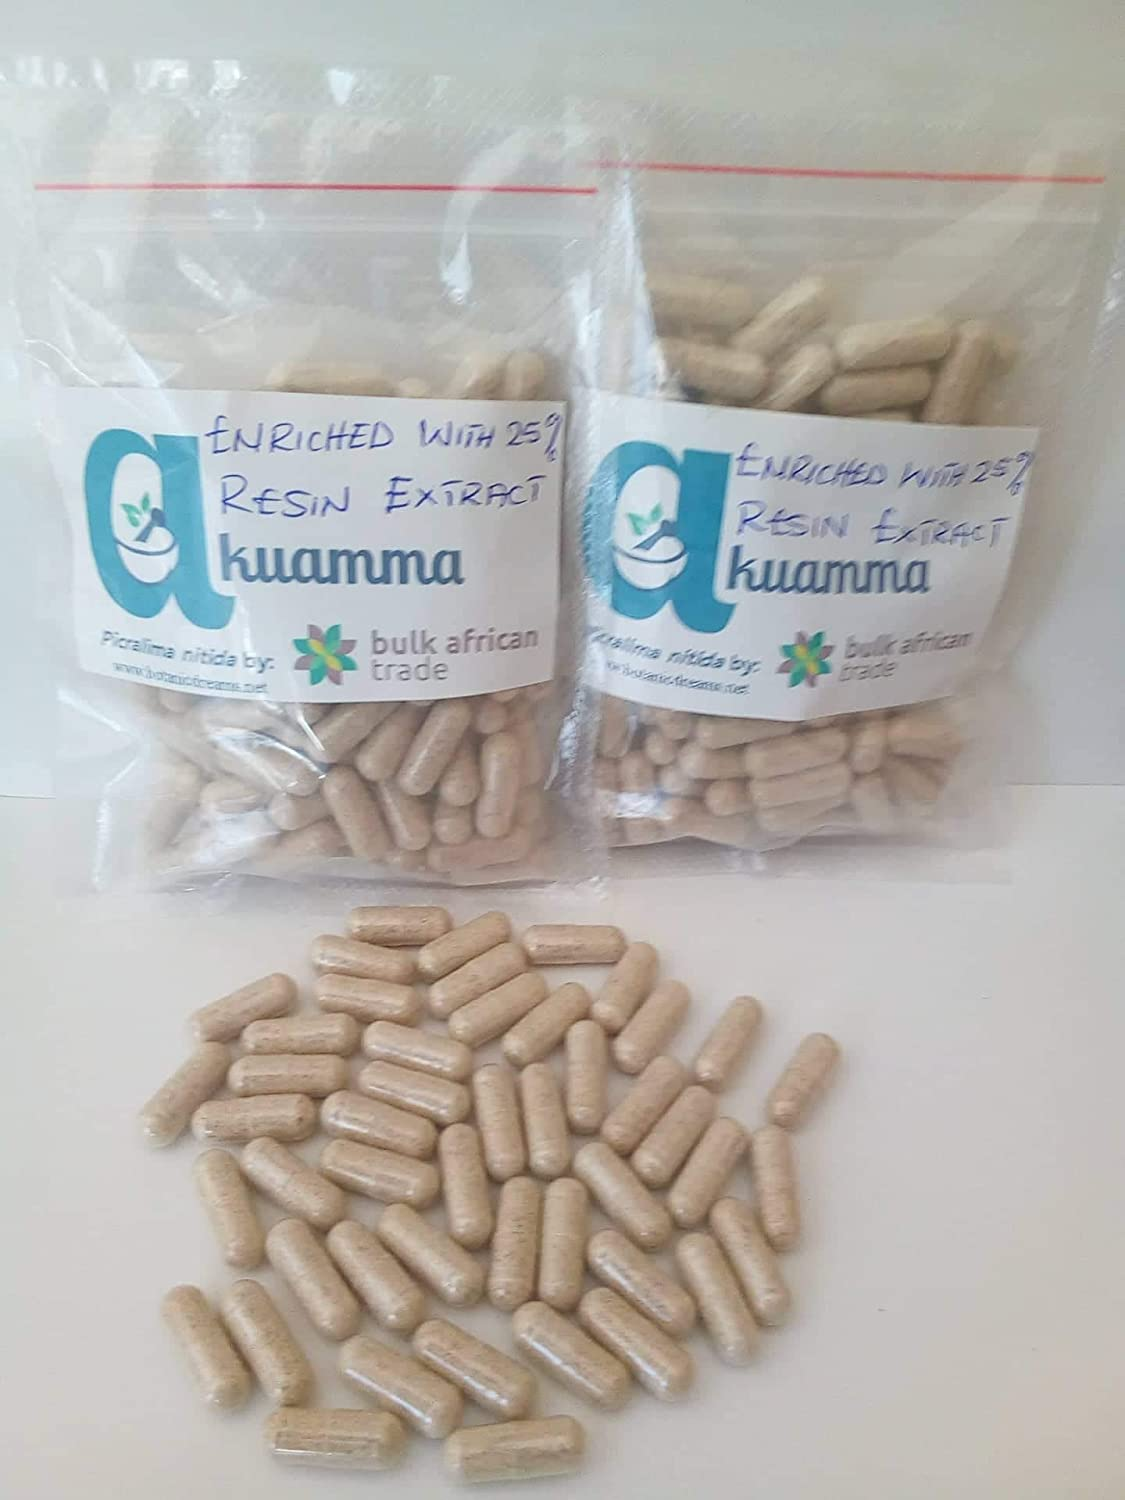 Akuamma Picralima nitida Seed Capsules 650mg cap enriched with 25 Extract 1000